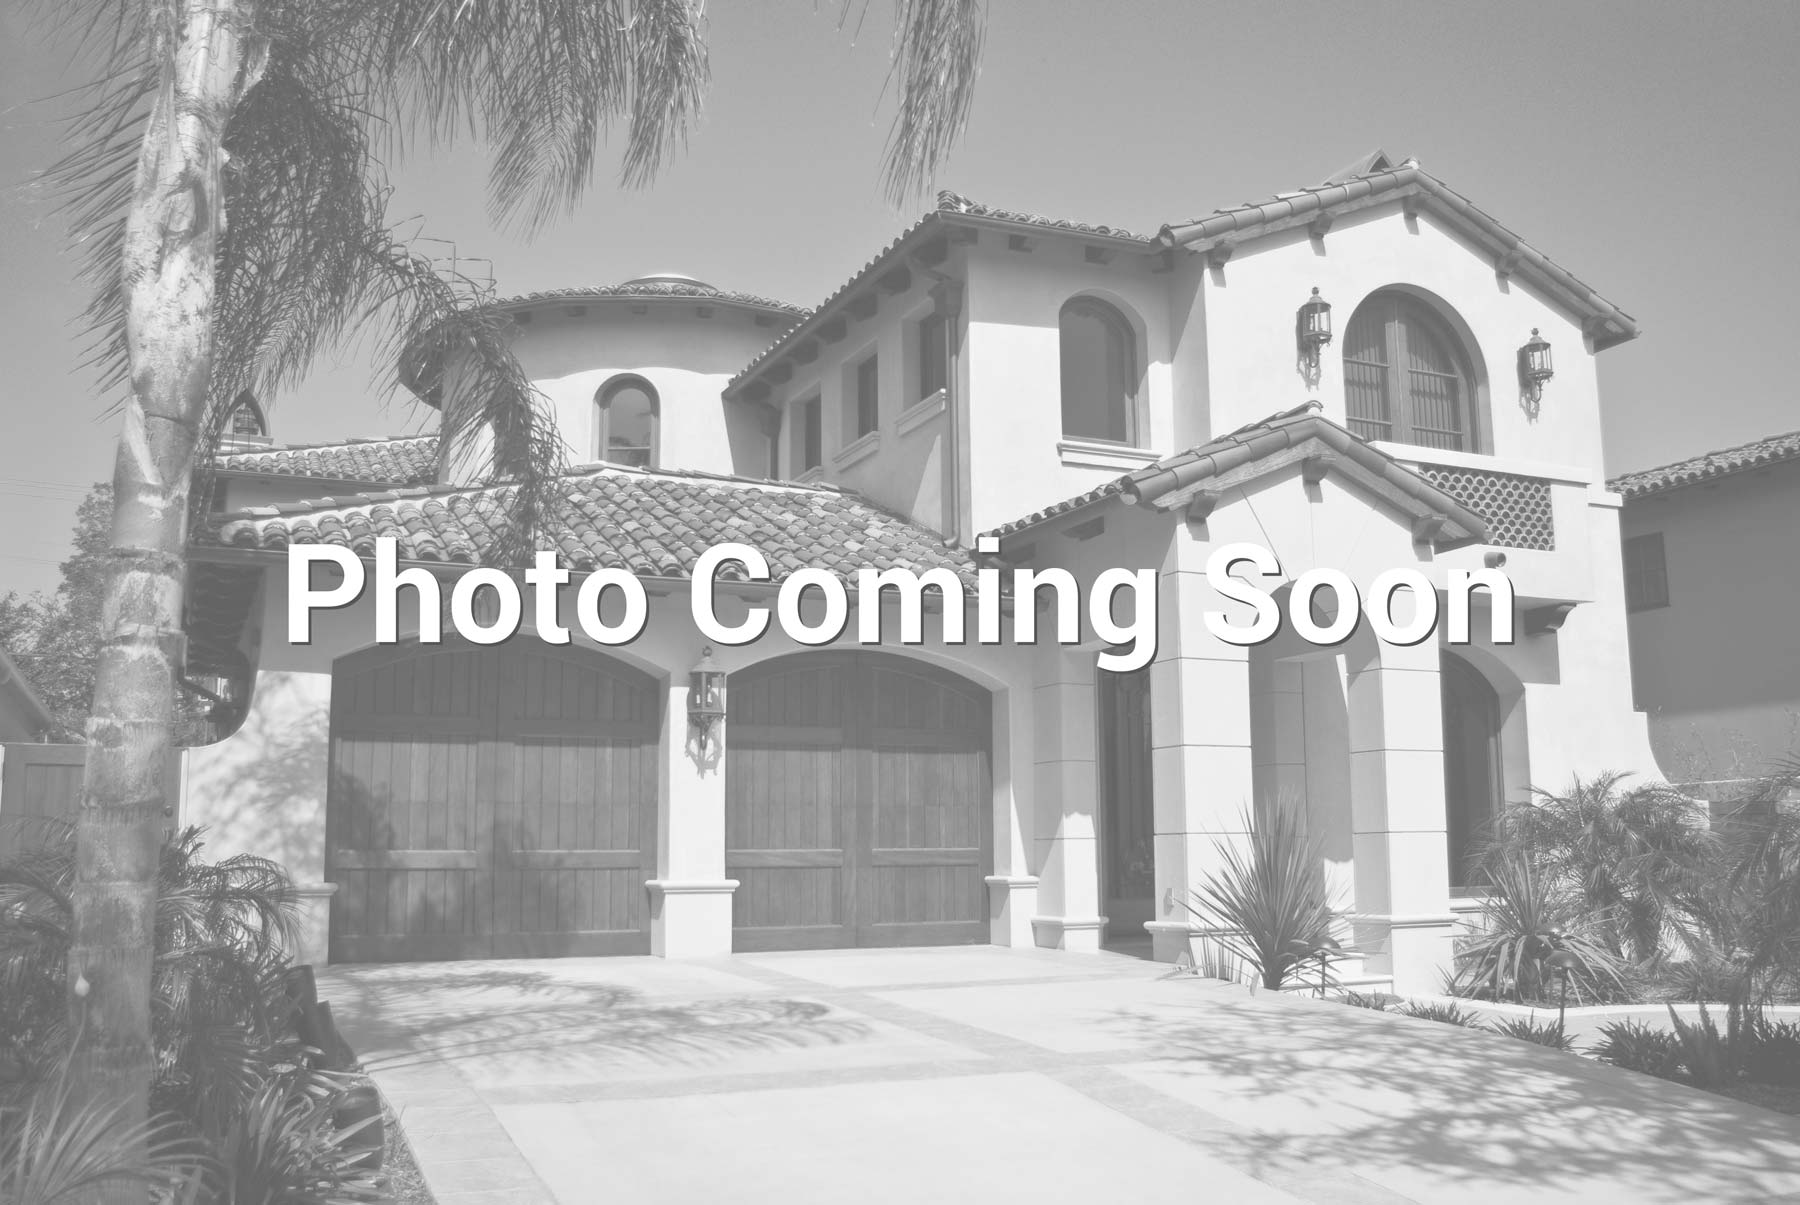 $825,000 - 5Br/3Ba - Home for Sale in Aviano, Phoenix